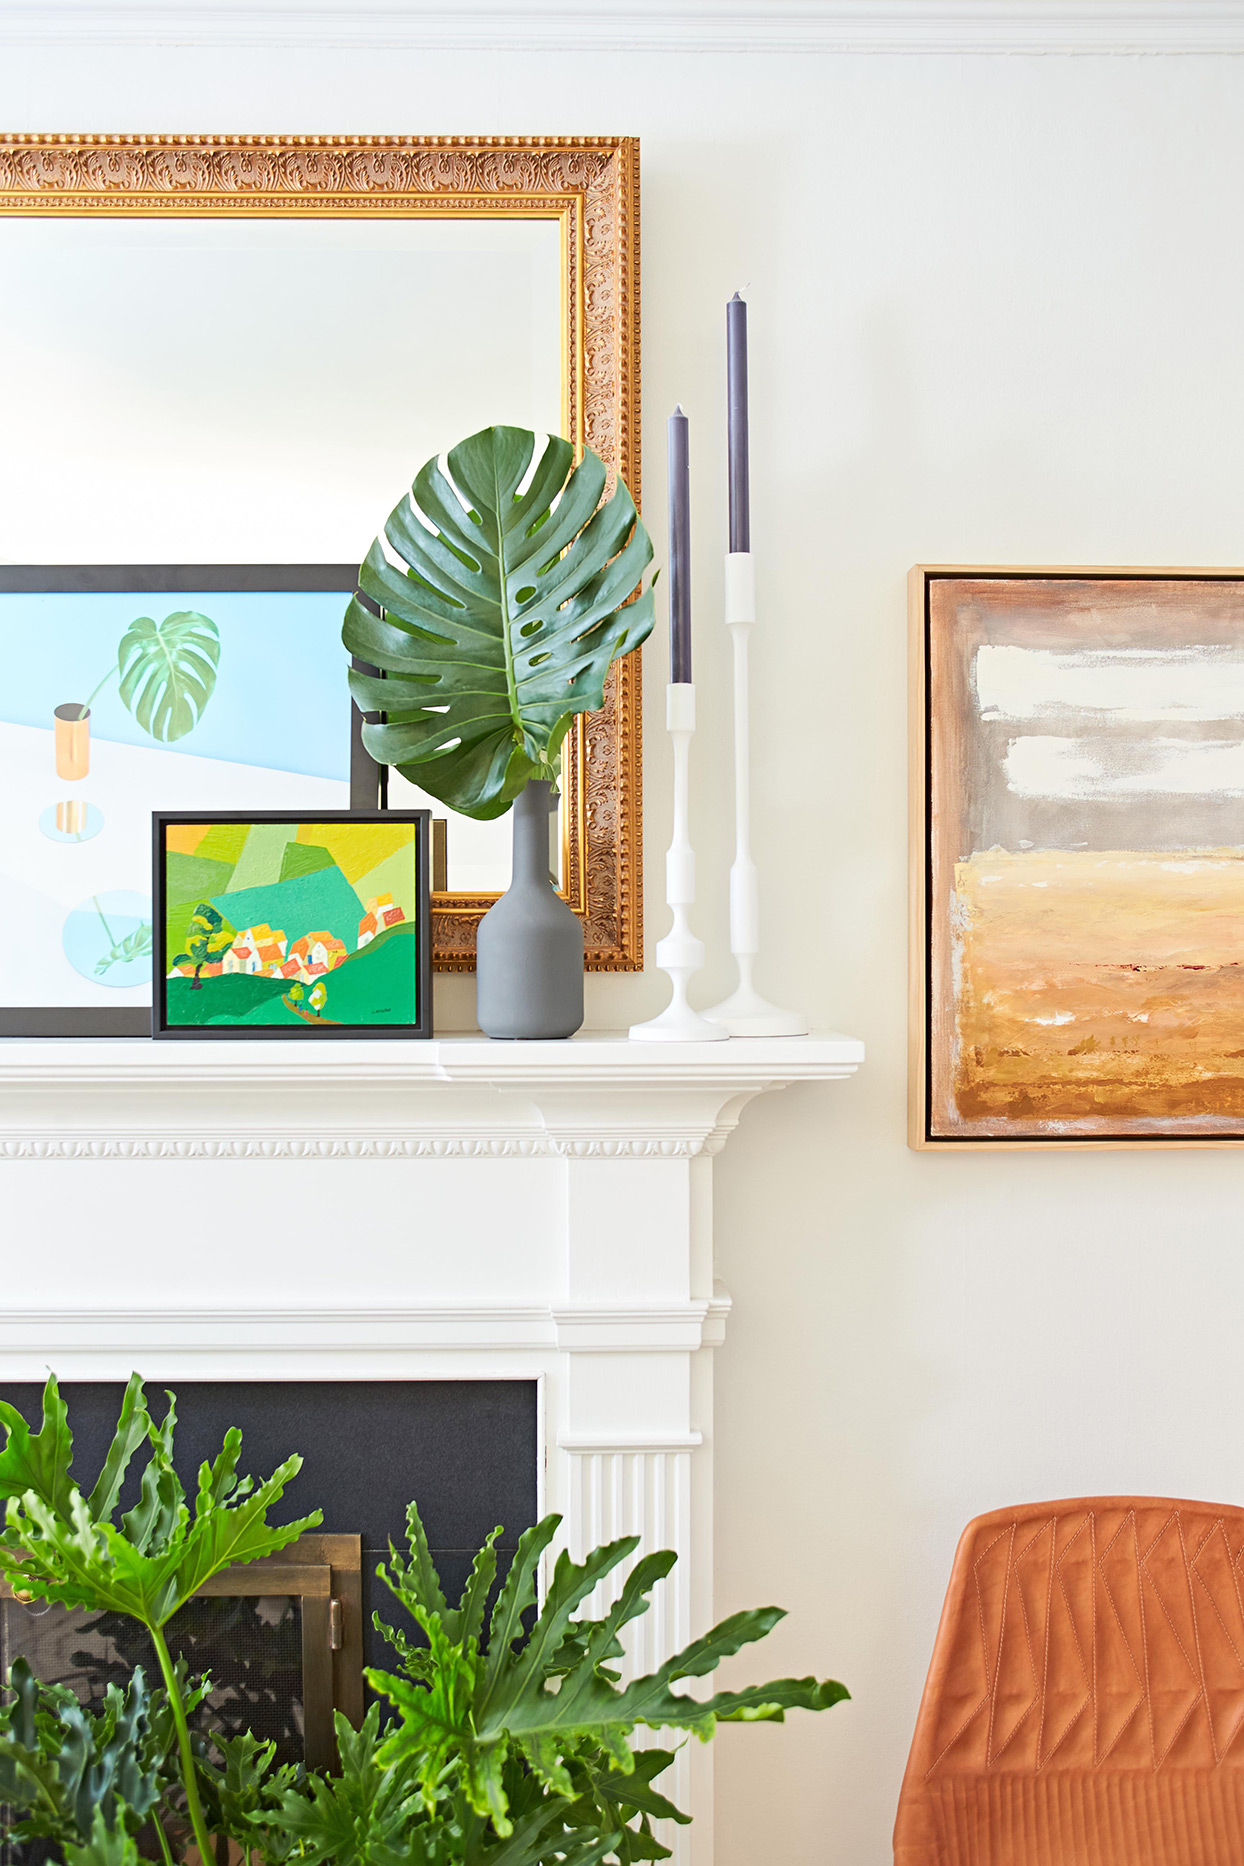 detail shot of white fireplace with prints, gold-edged mirror, white candlesticks with blue tapers; and gray vase with large frond